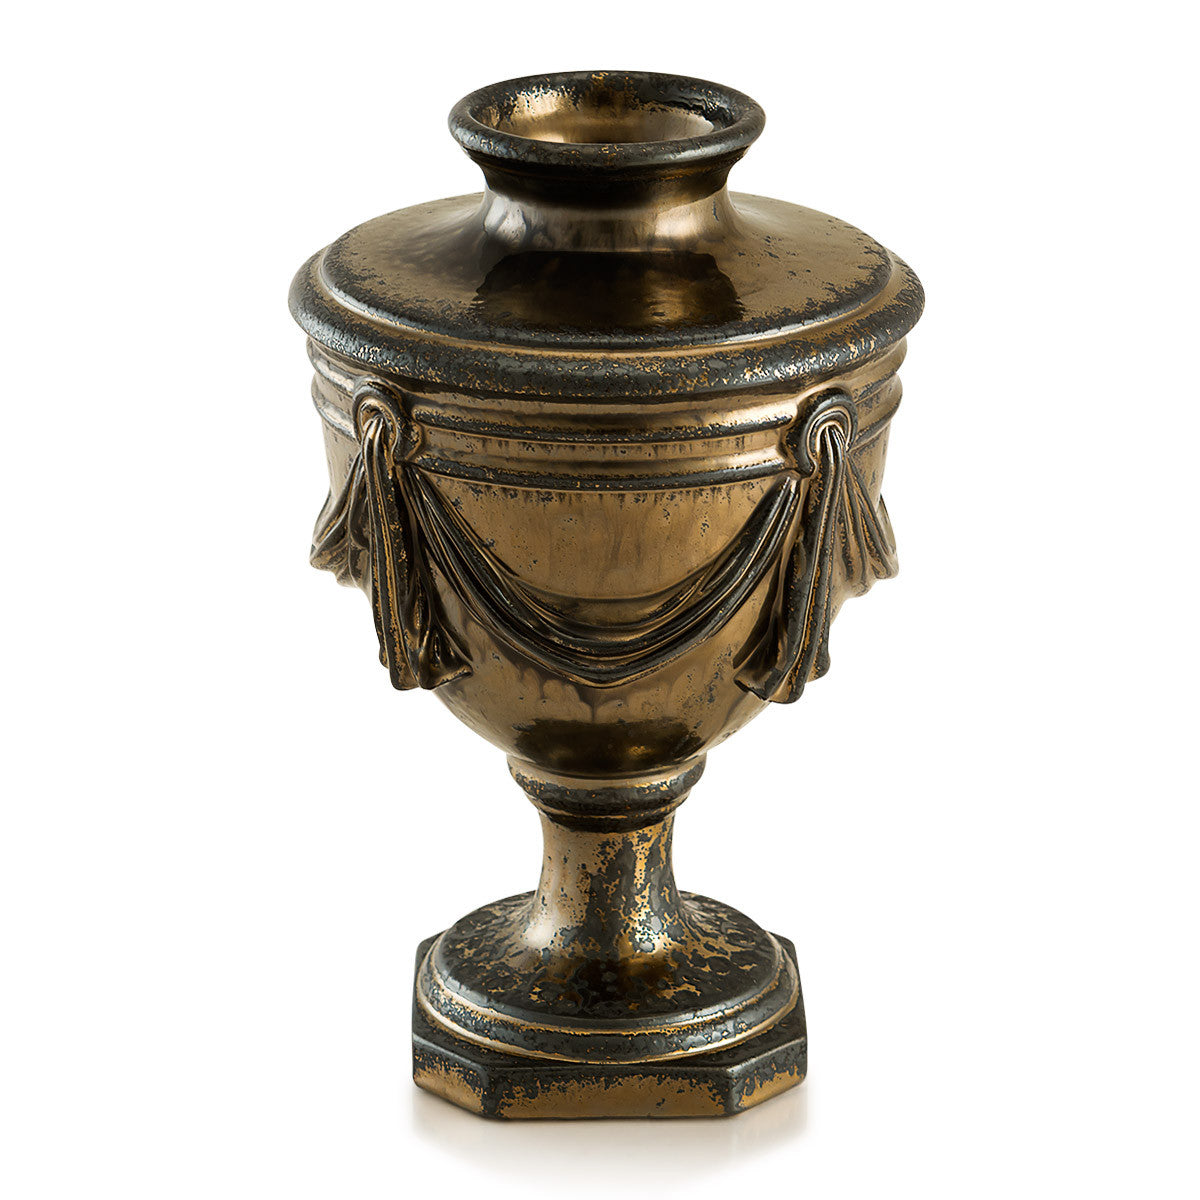 Ceramic vase four drapes in burnished bronze finish